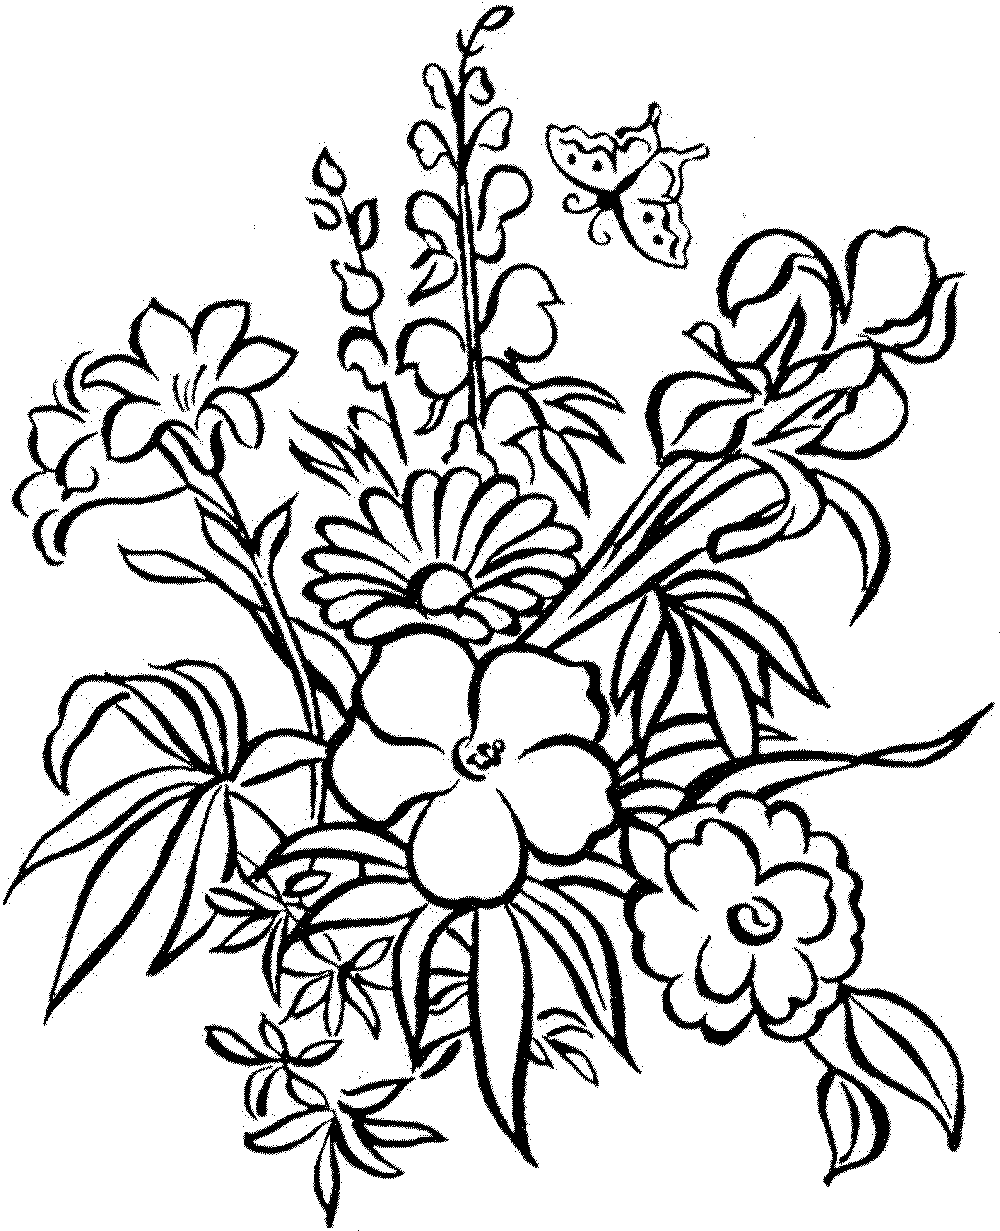 flowers colouring free printable flower coloring pages for kids best colouring flowers